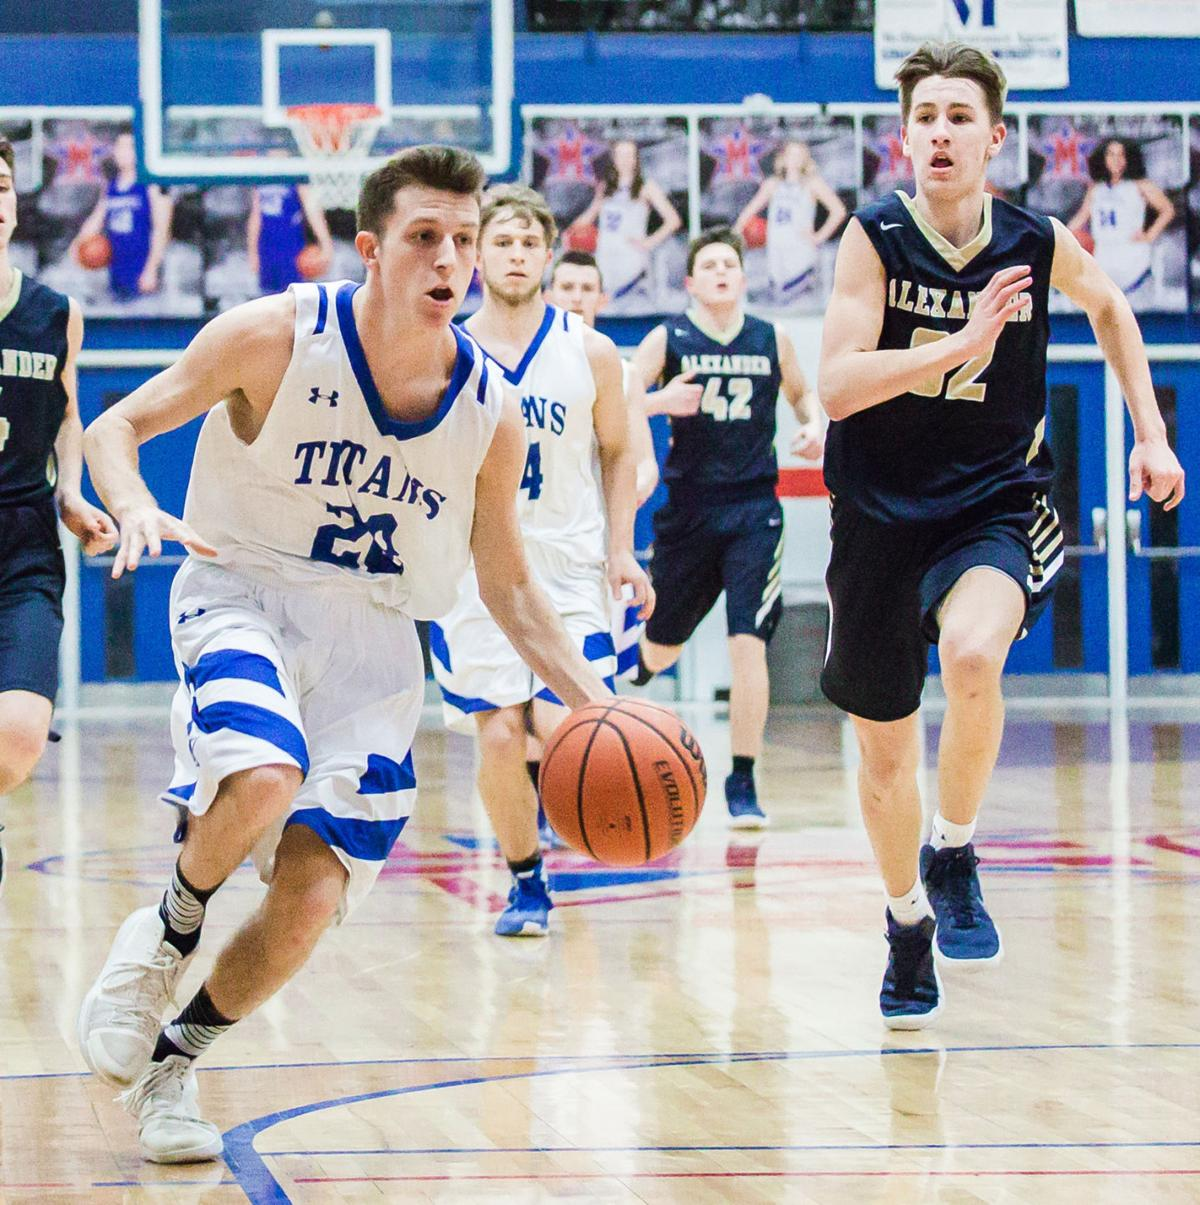 Quick outburst lifts Titans over Alexander Central